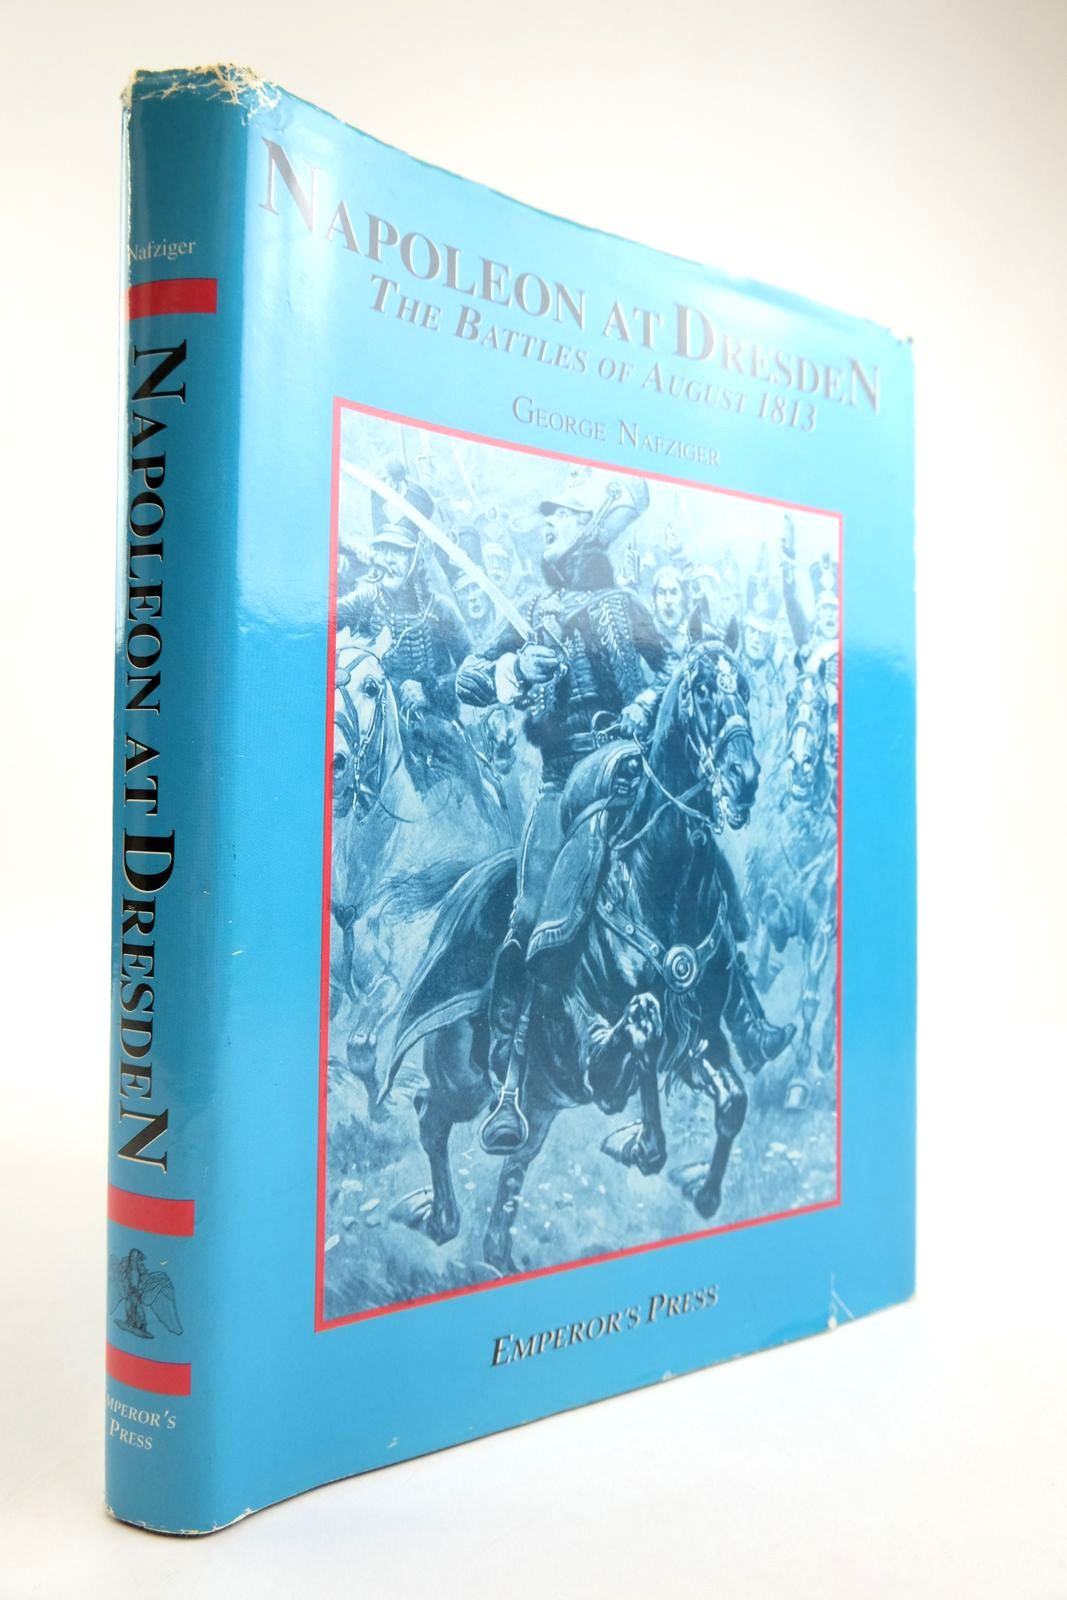 Photo of NAPOLEON'S DRESEDEN CAMPAIGN: THE BATTLES OF AUGUST 1813 written by Nafziger, George published by Emperor's Press (STOCK CODE: 2134159)  for sale by Stella & Rose's Books